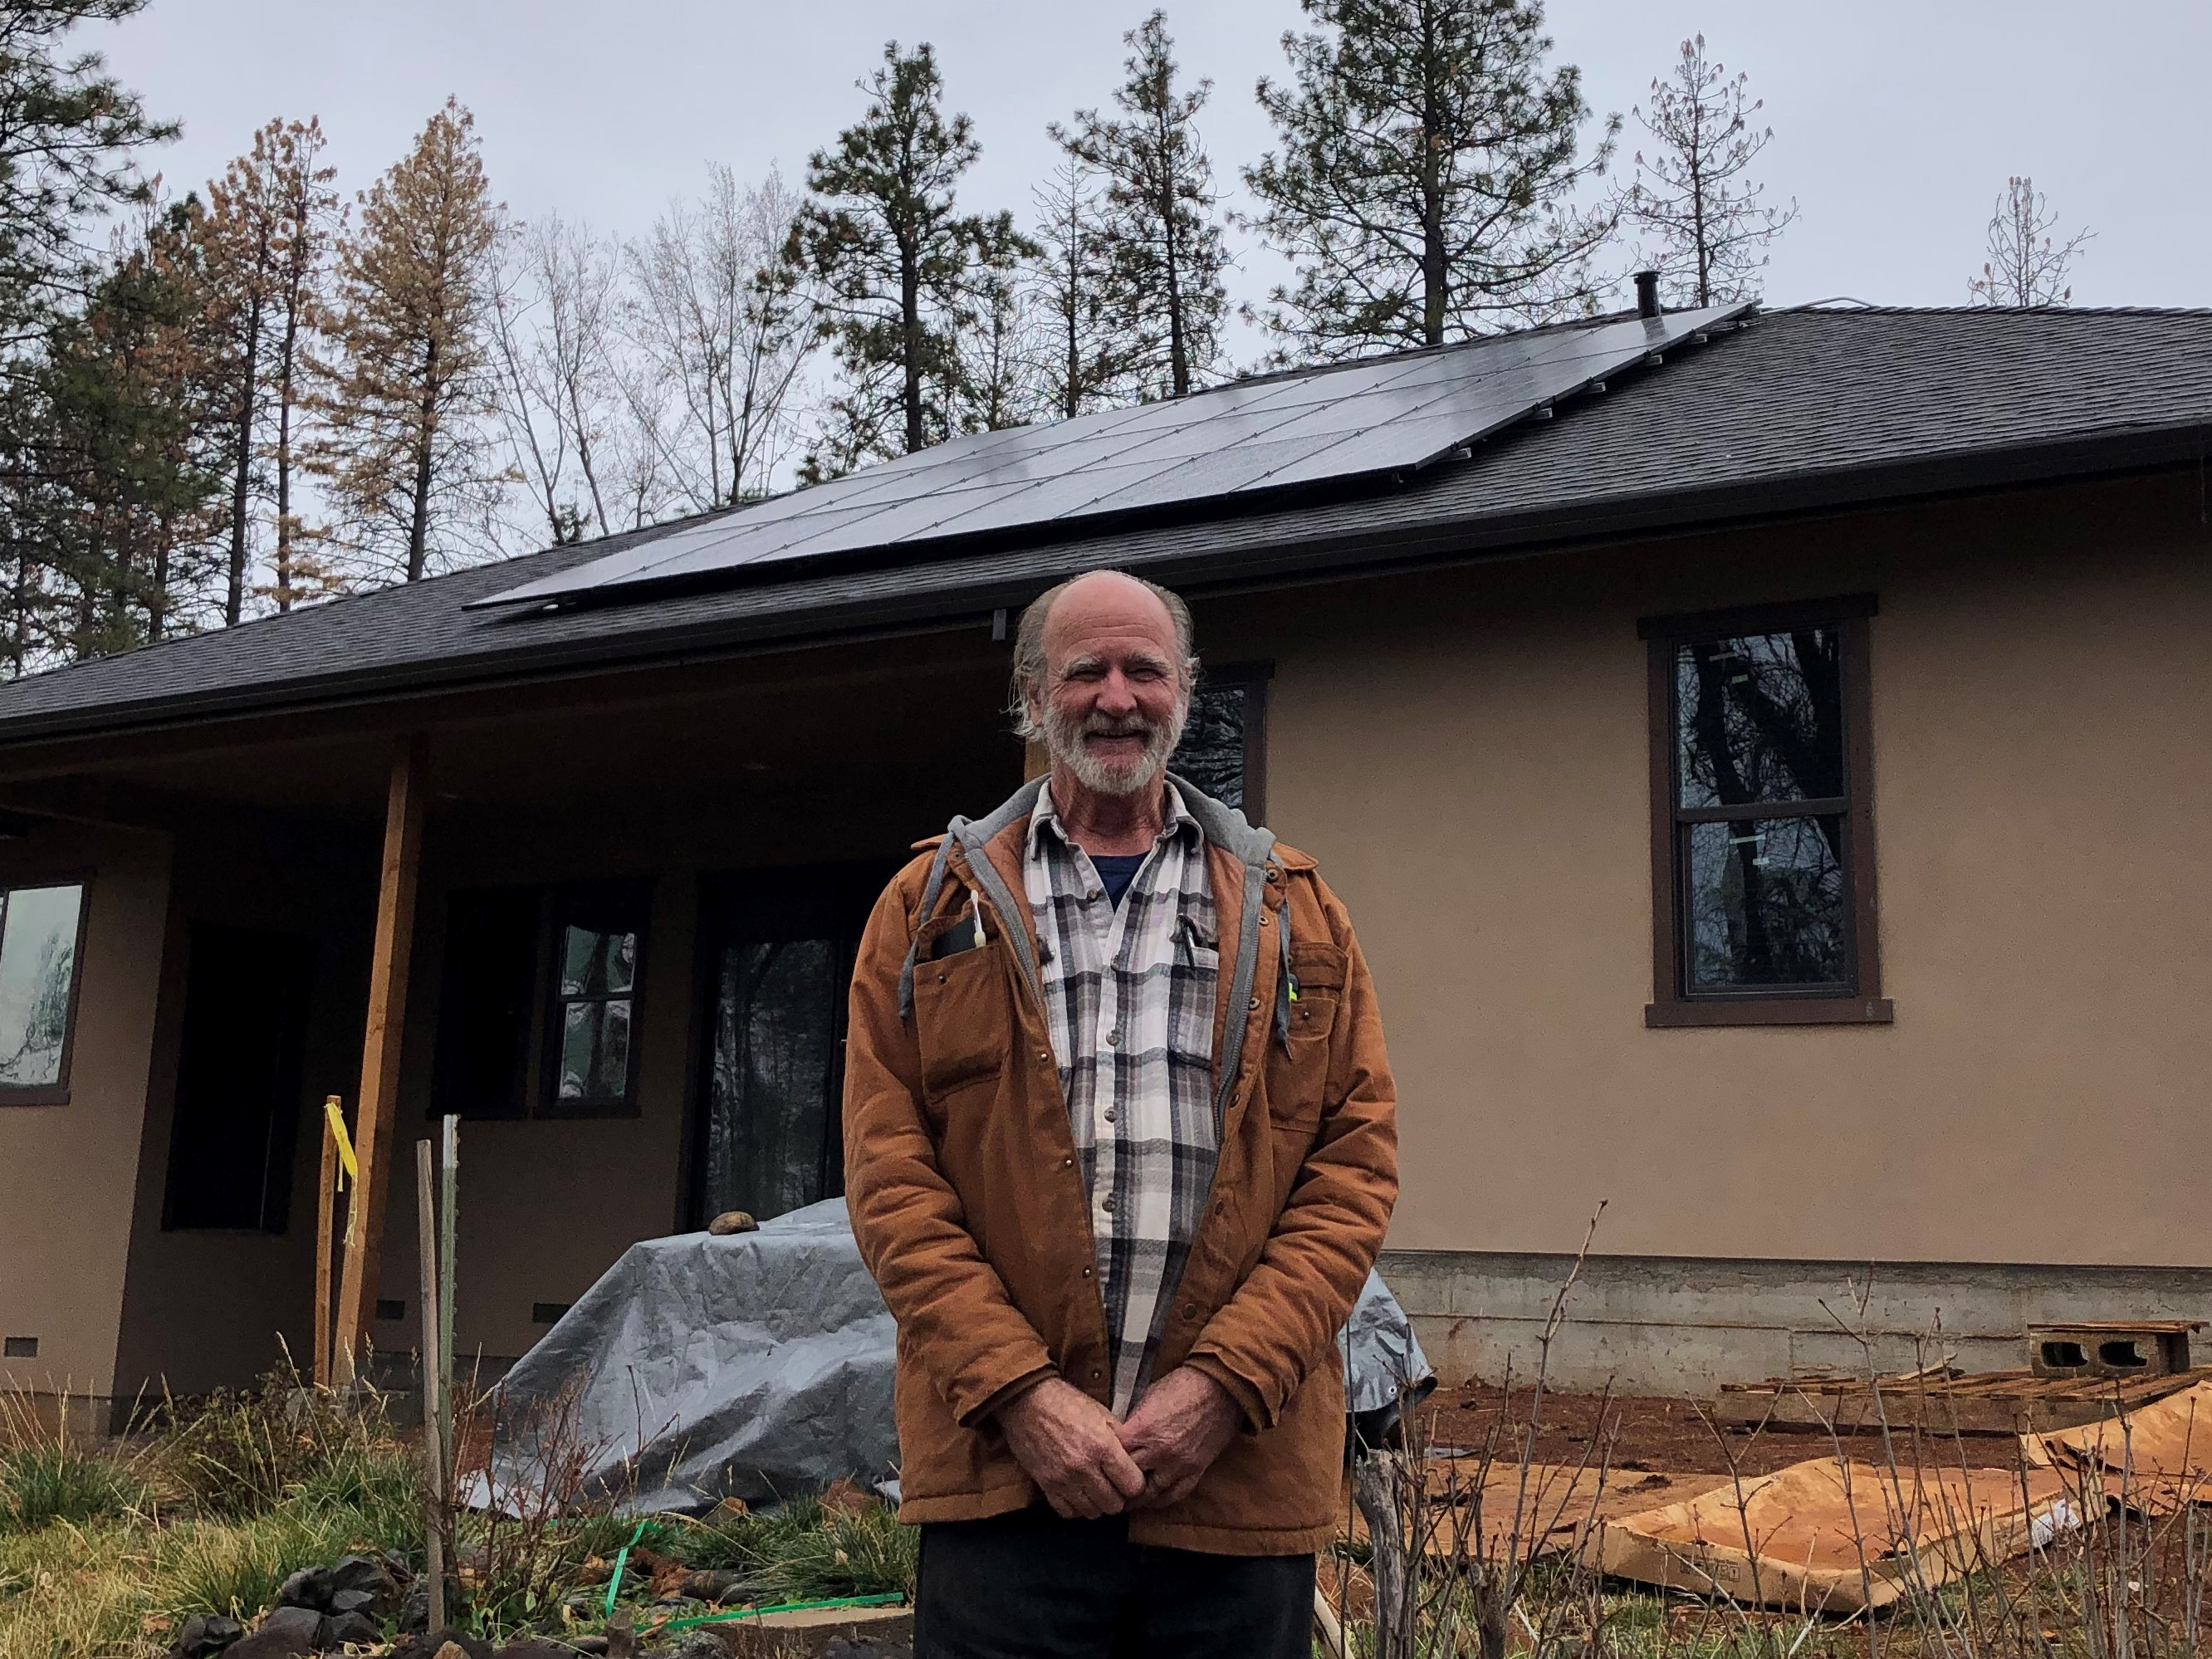 Richard Stone standing in front of his new home in Paradise, CA with newly installed solar panels visible on the roof, tall trees in the background.